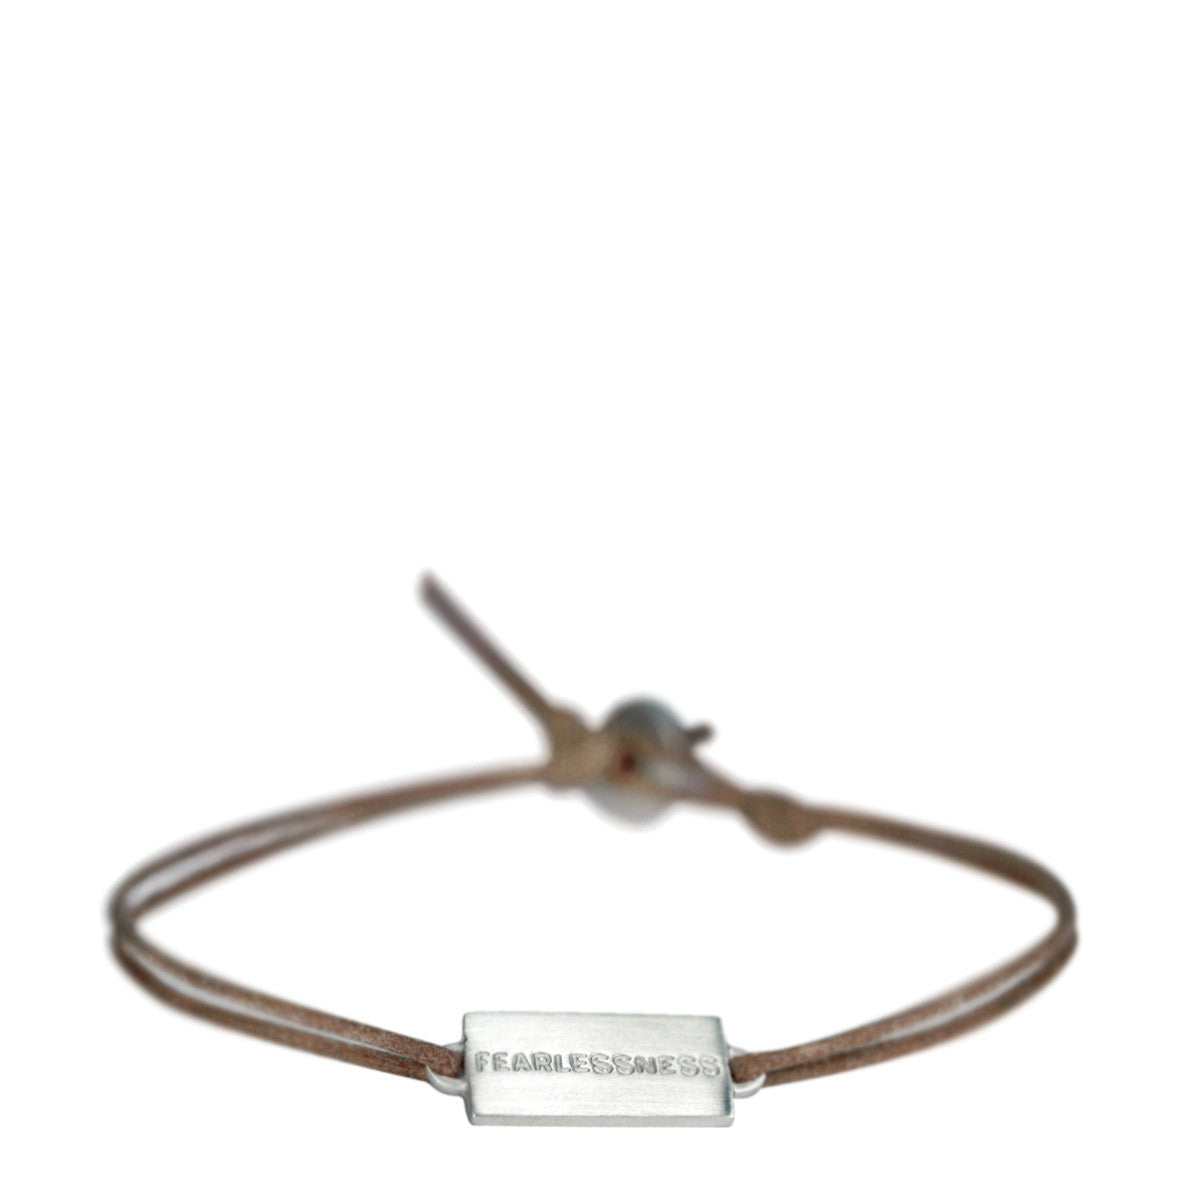 Men's Sterling Silver Joyful Heart Fearlessness Bracelet on Cord